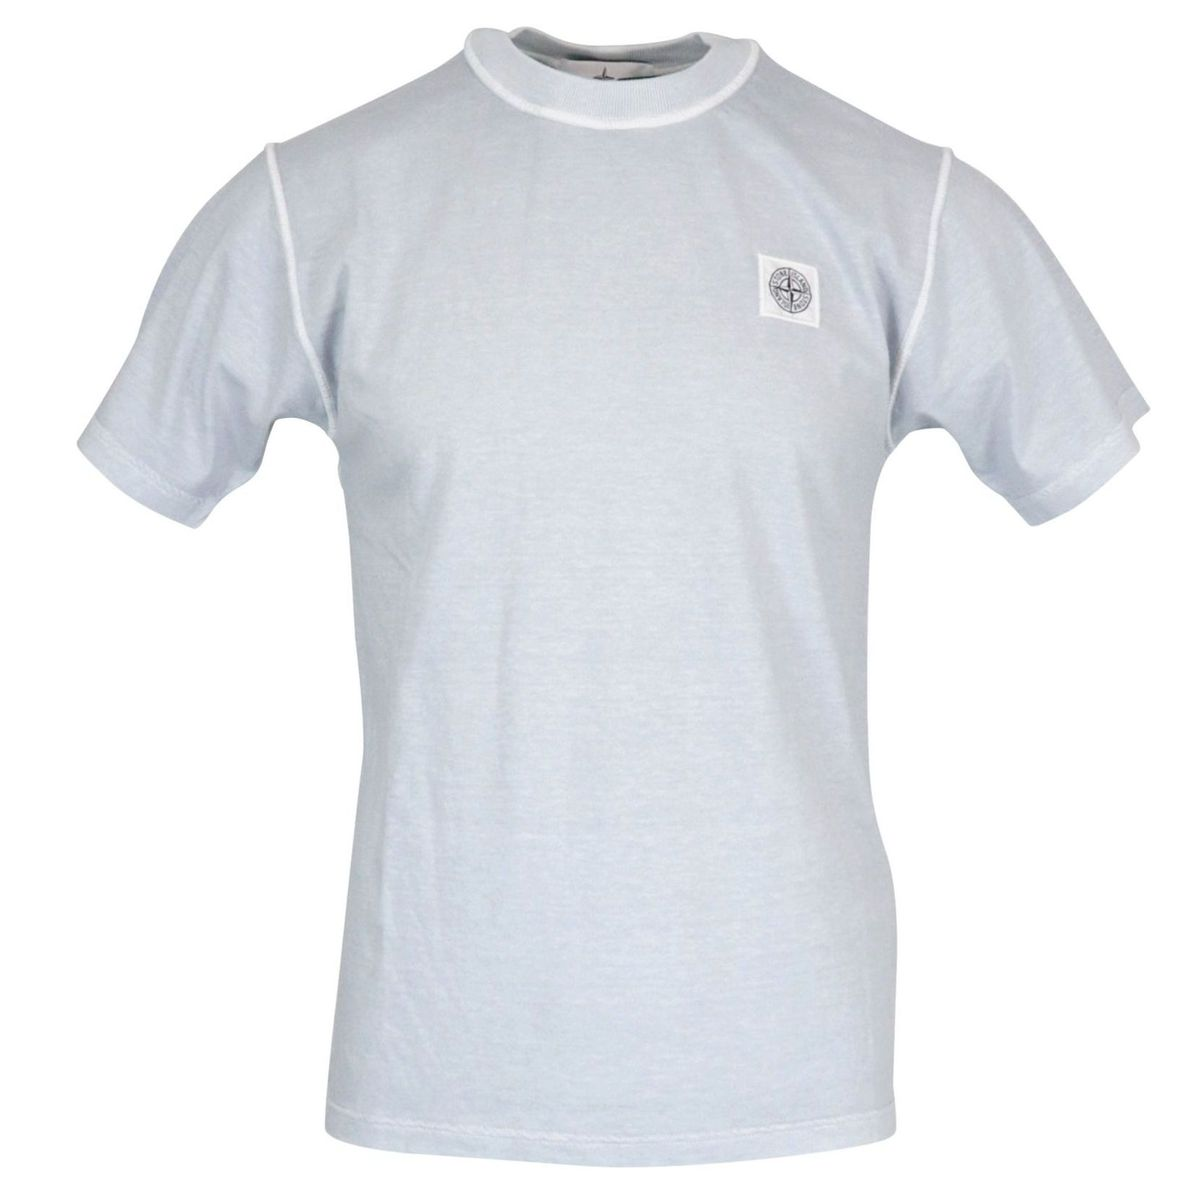 Cotton t-shirt with logo patch on the chest Silver lily Stone Island